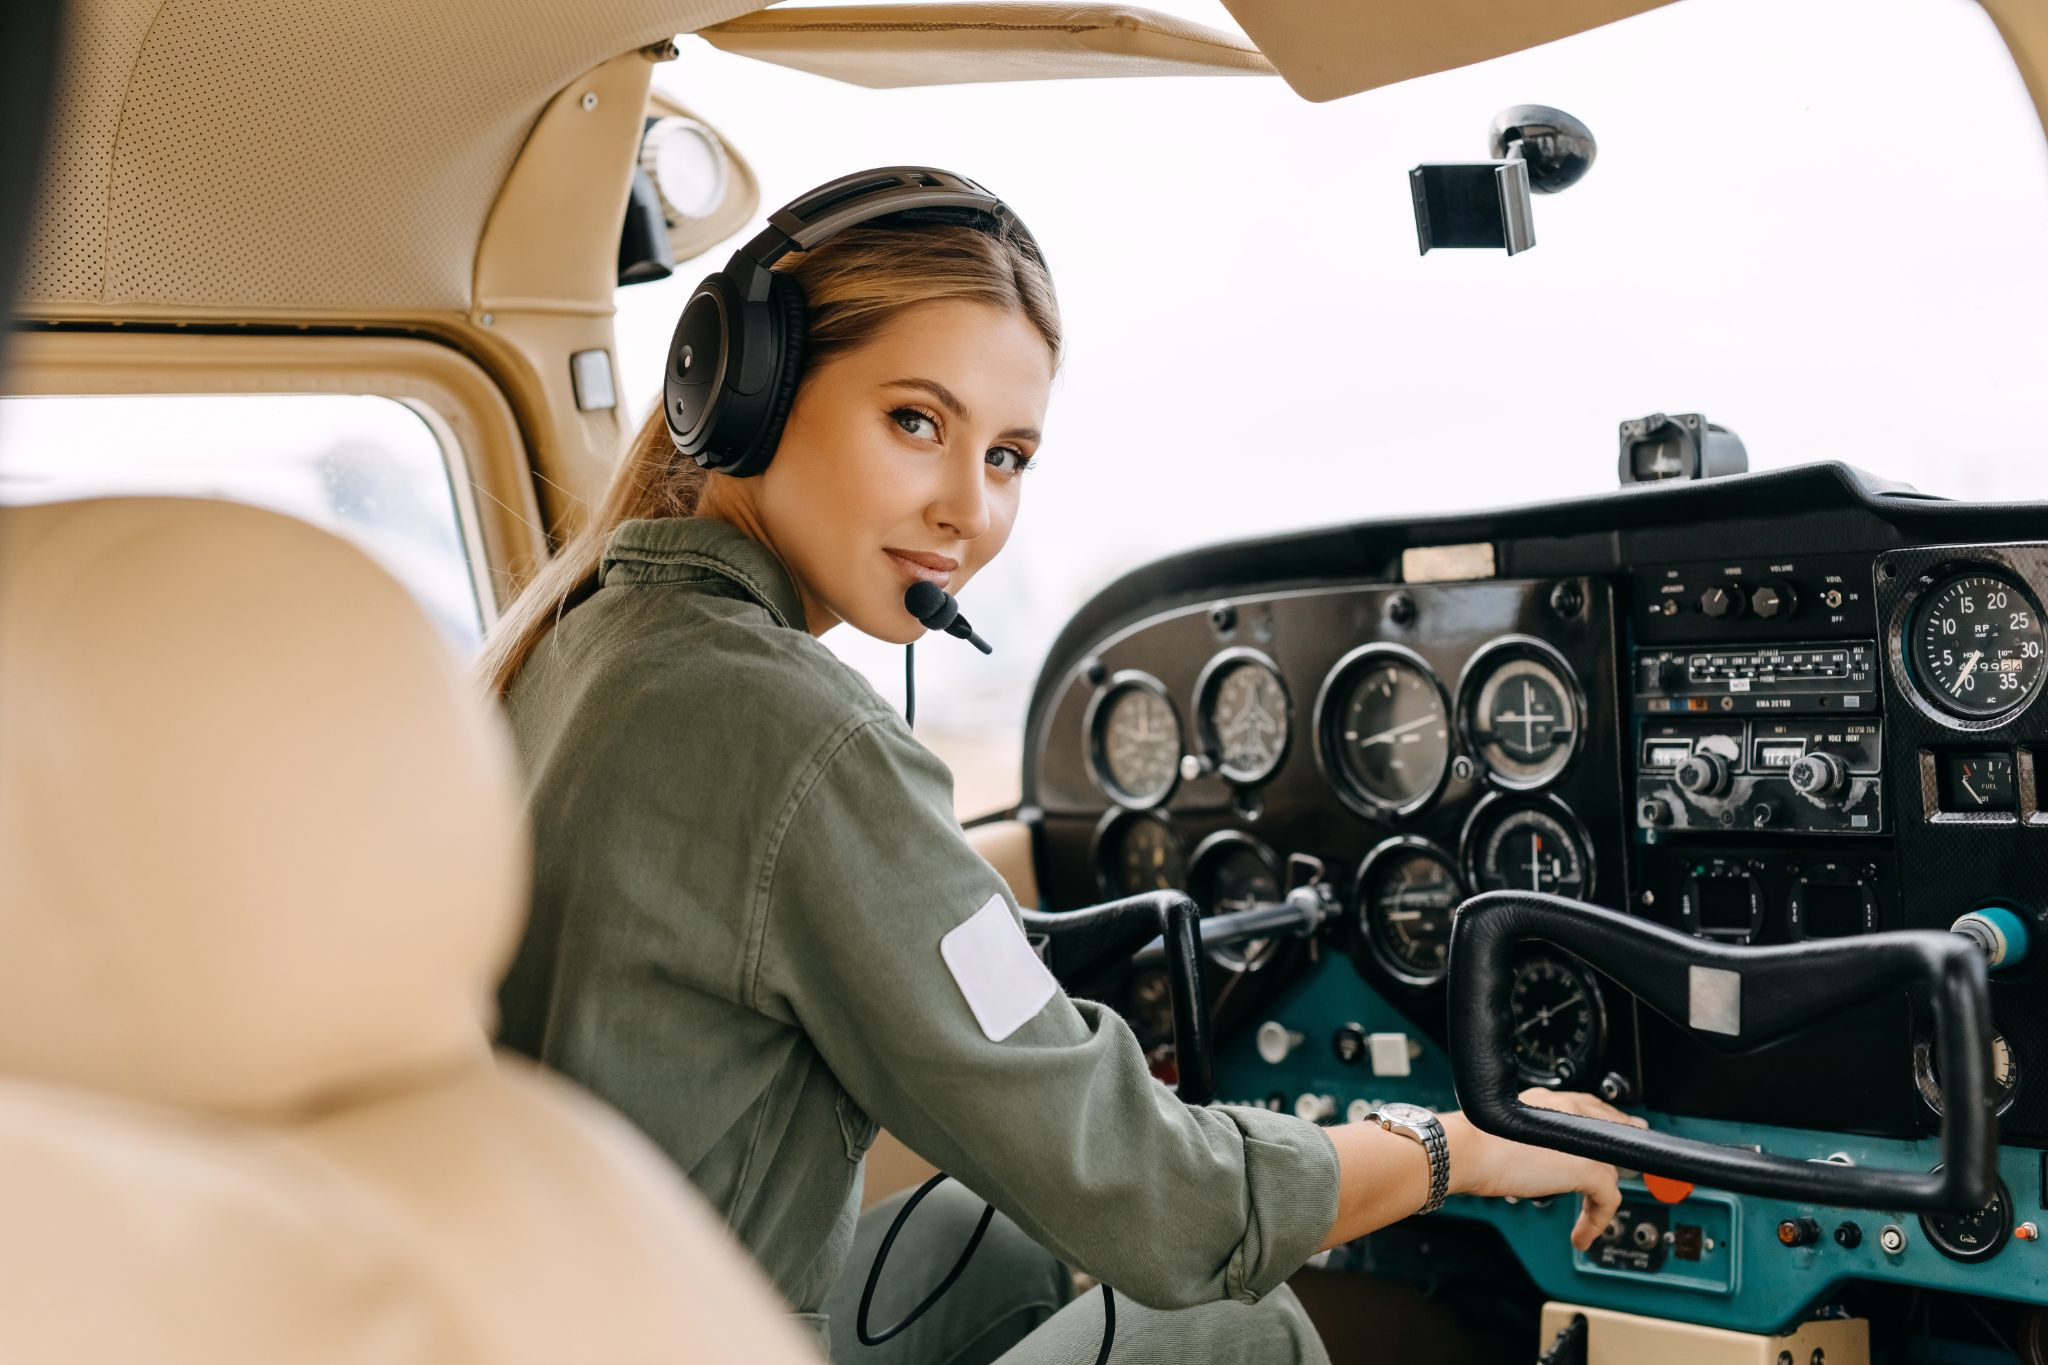 Woman pilot sitting in private airplane cockpit